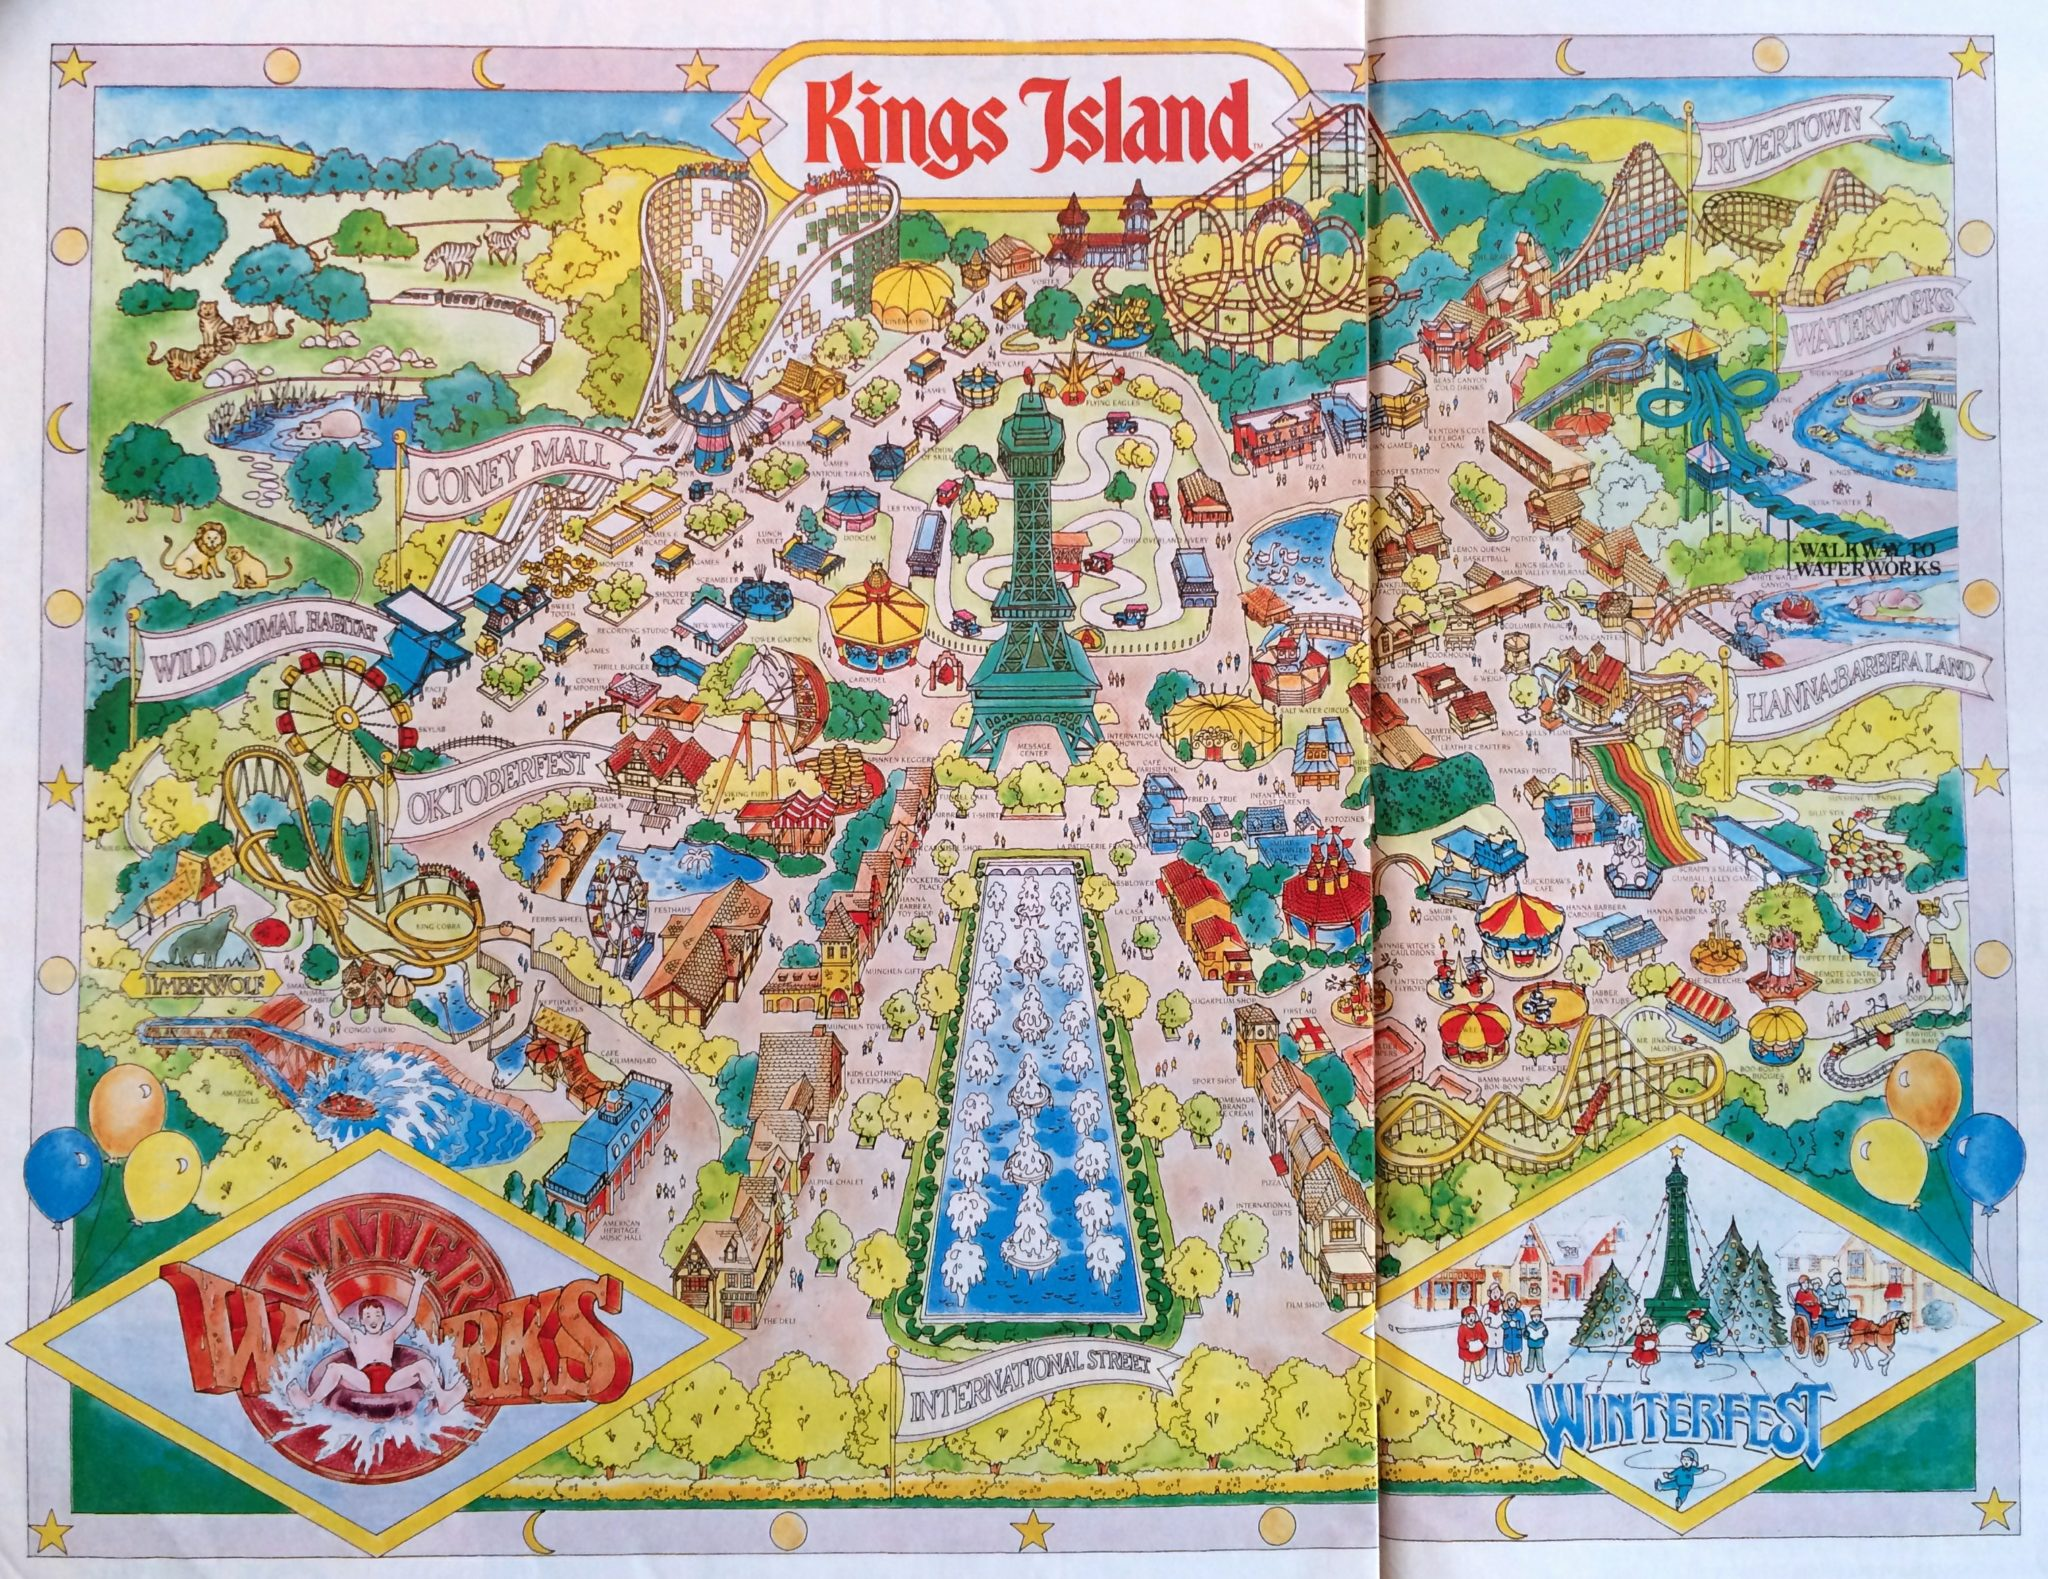 Kings Island Historical Maps - CP Food Blog on new york city new jersey map, wild river country map, apostle islands map, carowinds map, north island naval base map, islands of adventure map, canada's wonderland map, kiddieland map, paramount park map, disney's blizzard beach map, coney island fun map, westbury new york map, beach waterpark map, six flags map, cincinnati map, cedar point map, oaks amusement park map, michigan adventure map, long island satellite map, disneyland map,